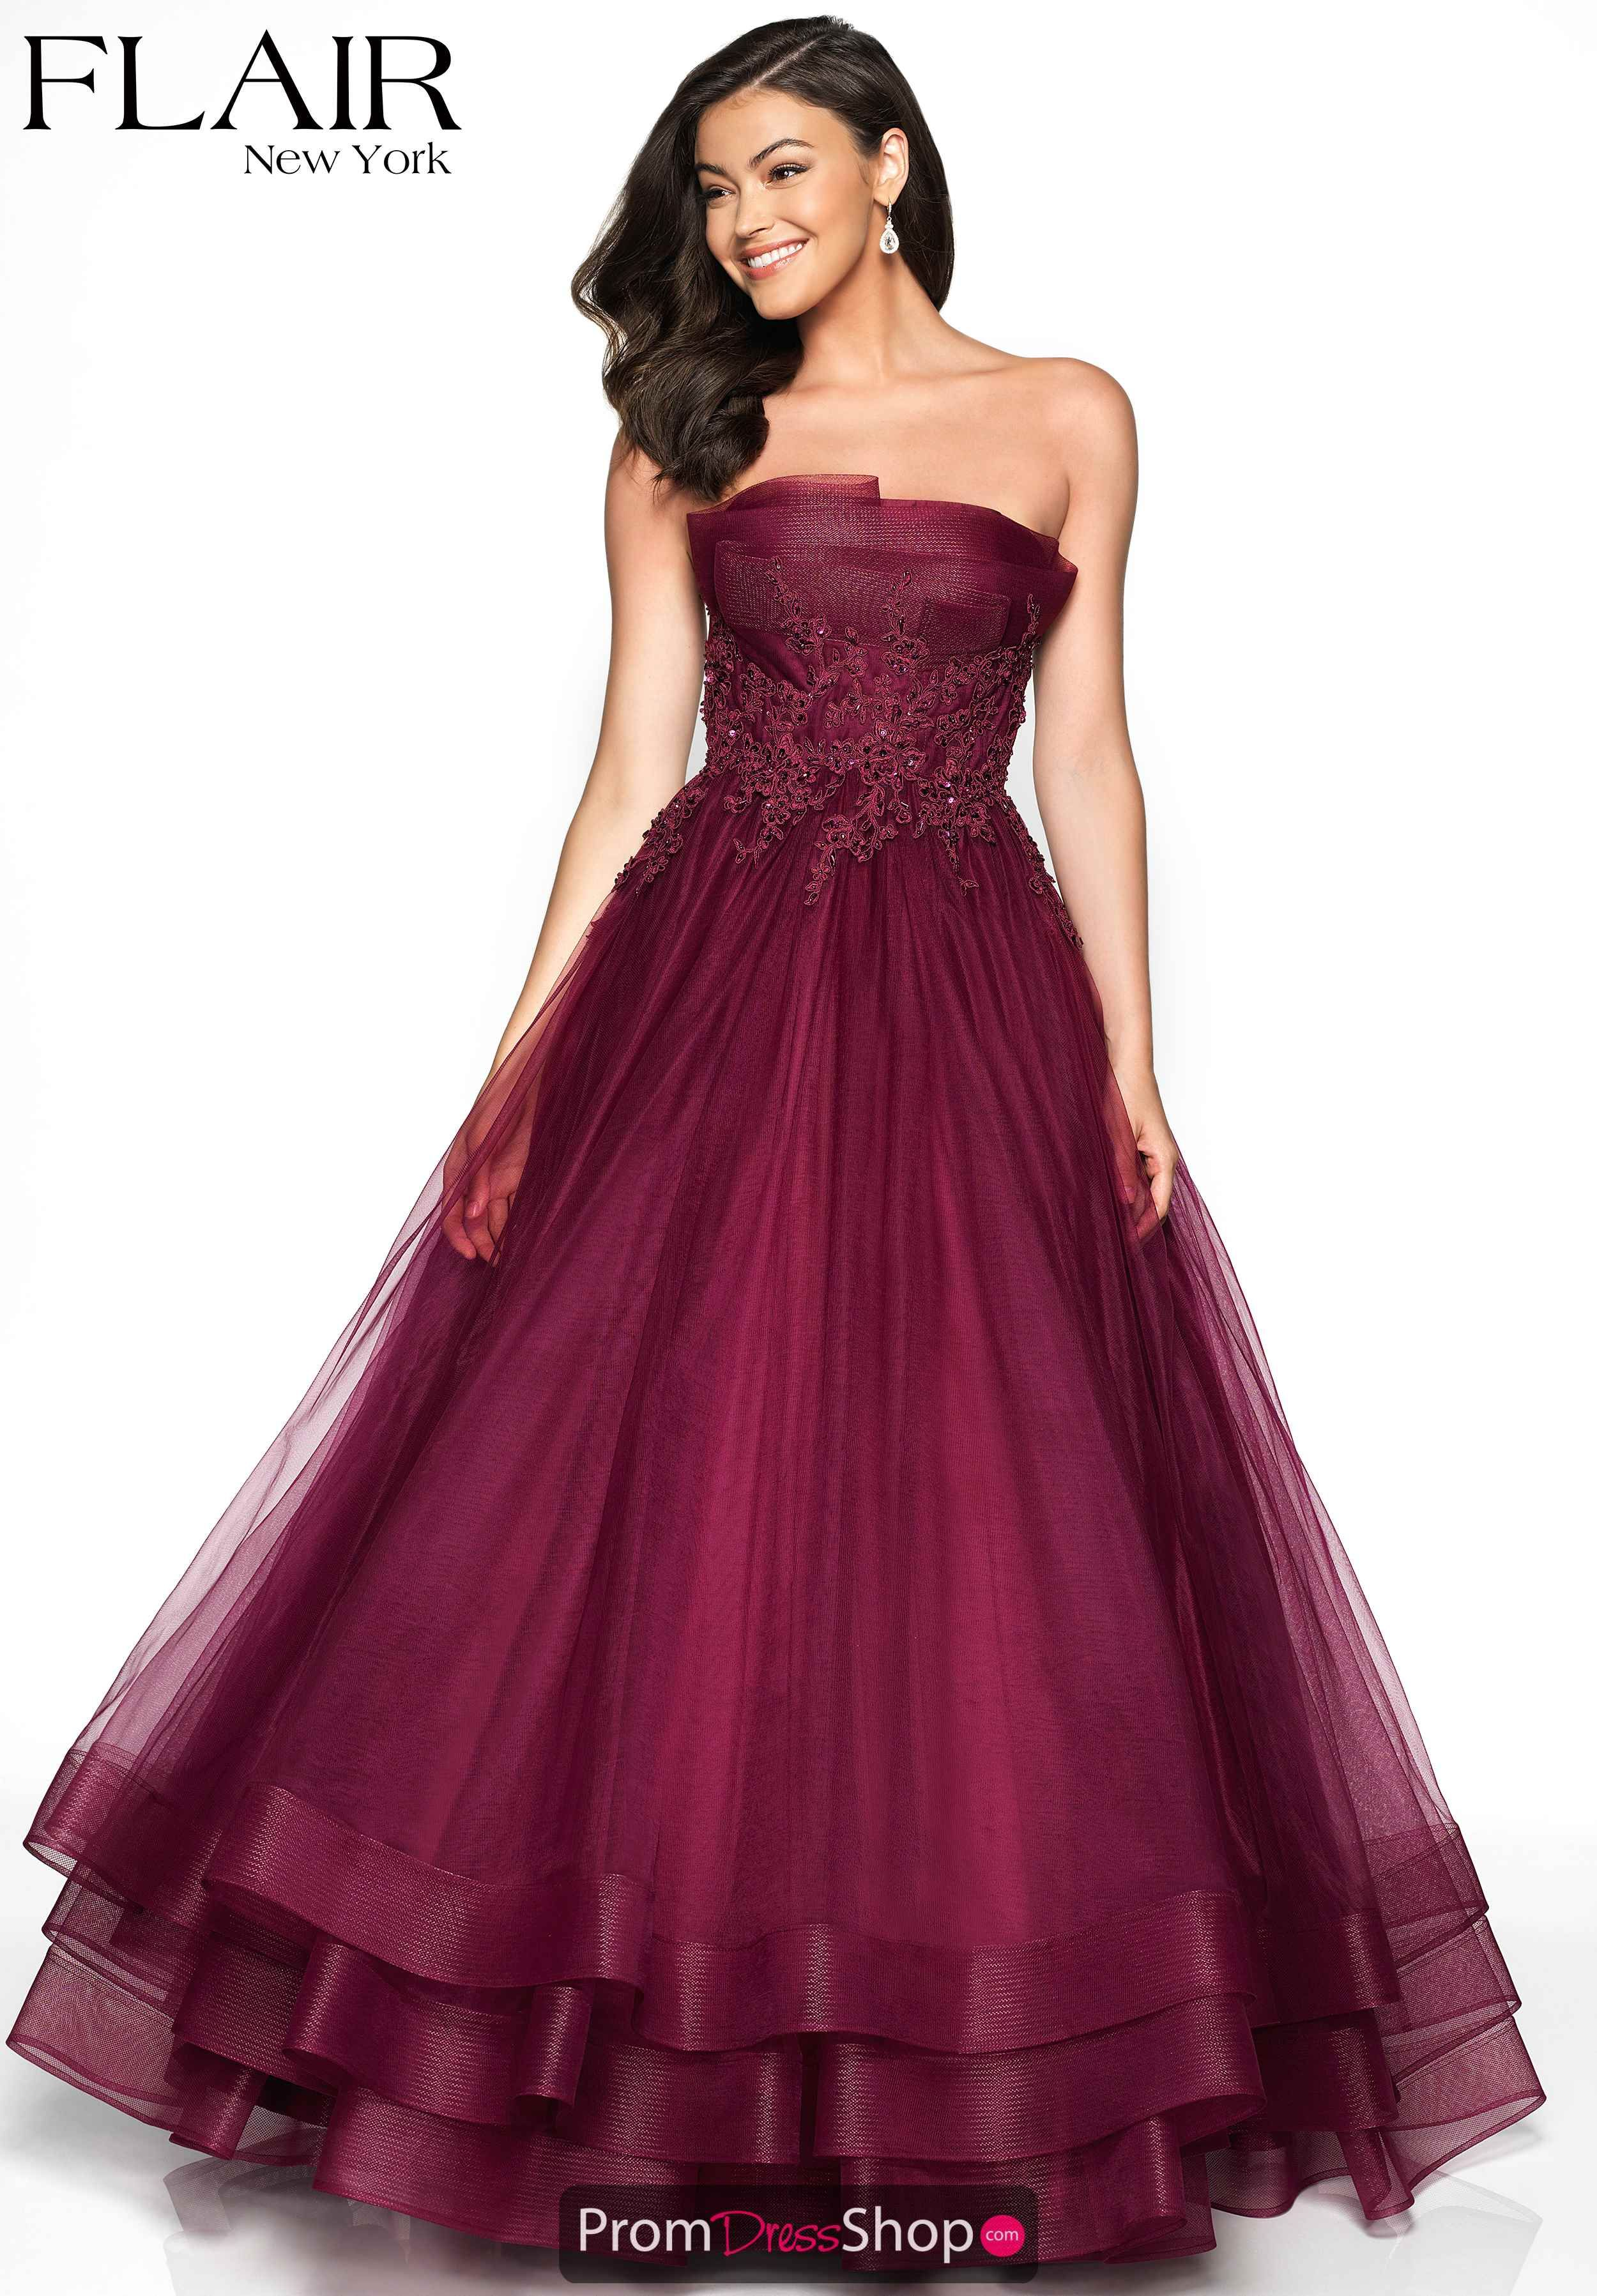 a9150709c162 Magenta High Fashion Trends, Vintage Party Dresses, Angel Dress, Ball Gown  Dresses,